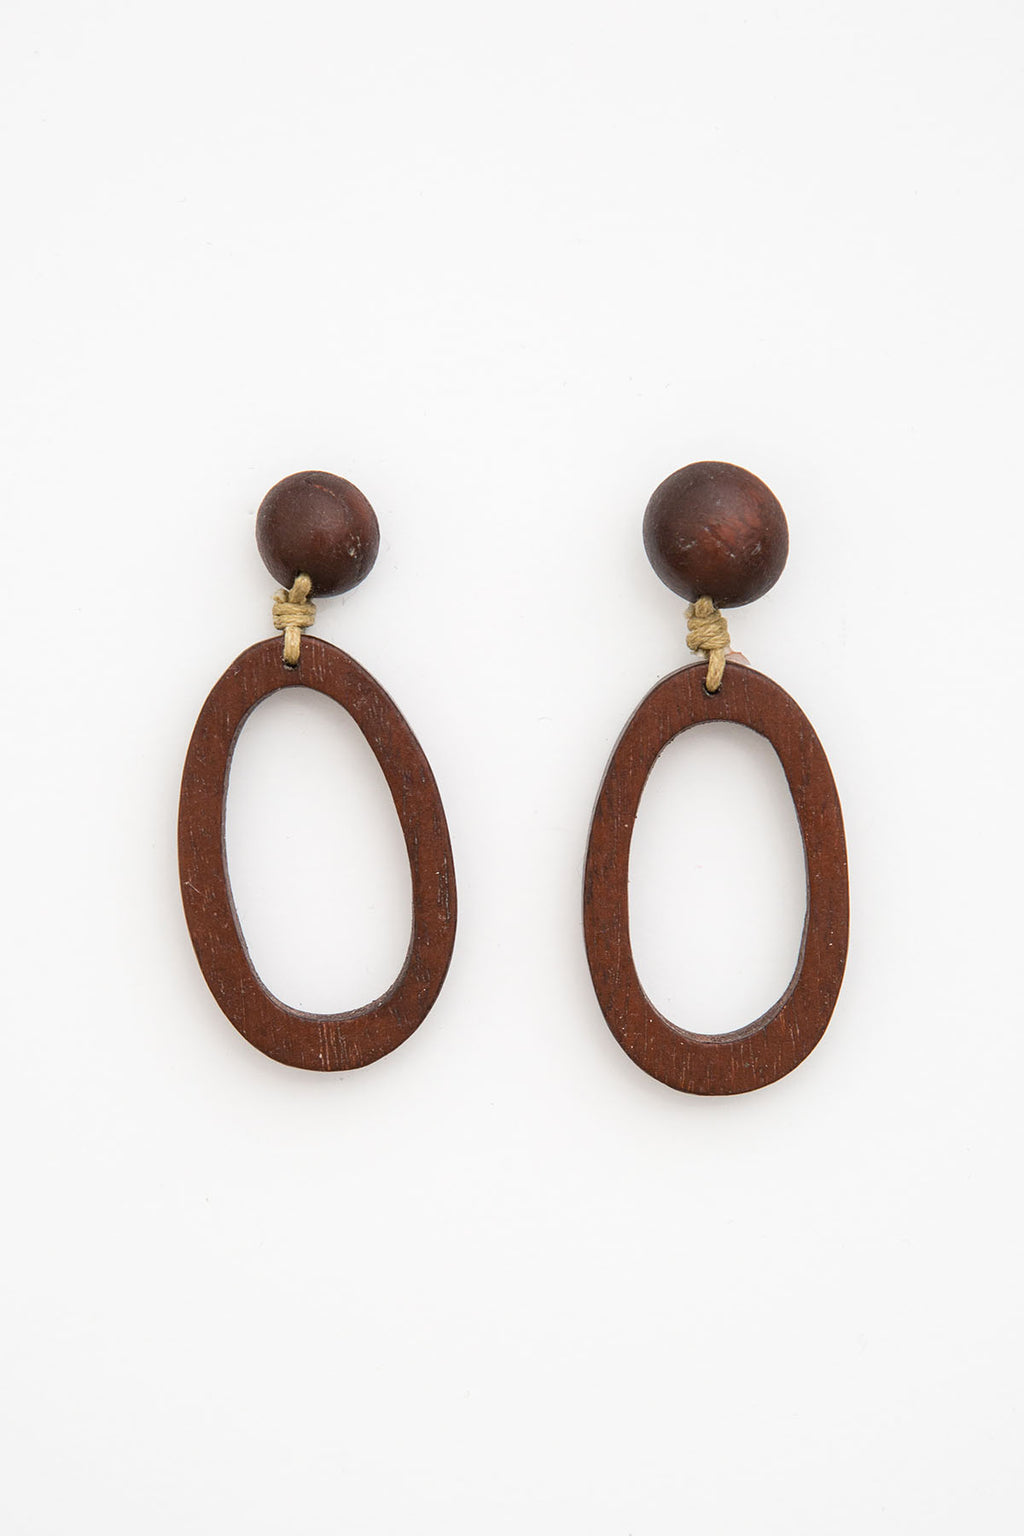 Samana Earrings - Clay - The Bohemian Corner